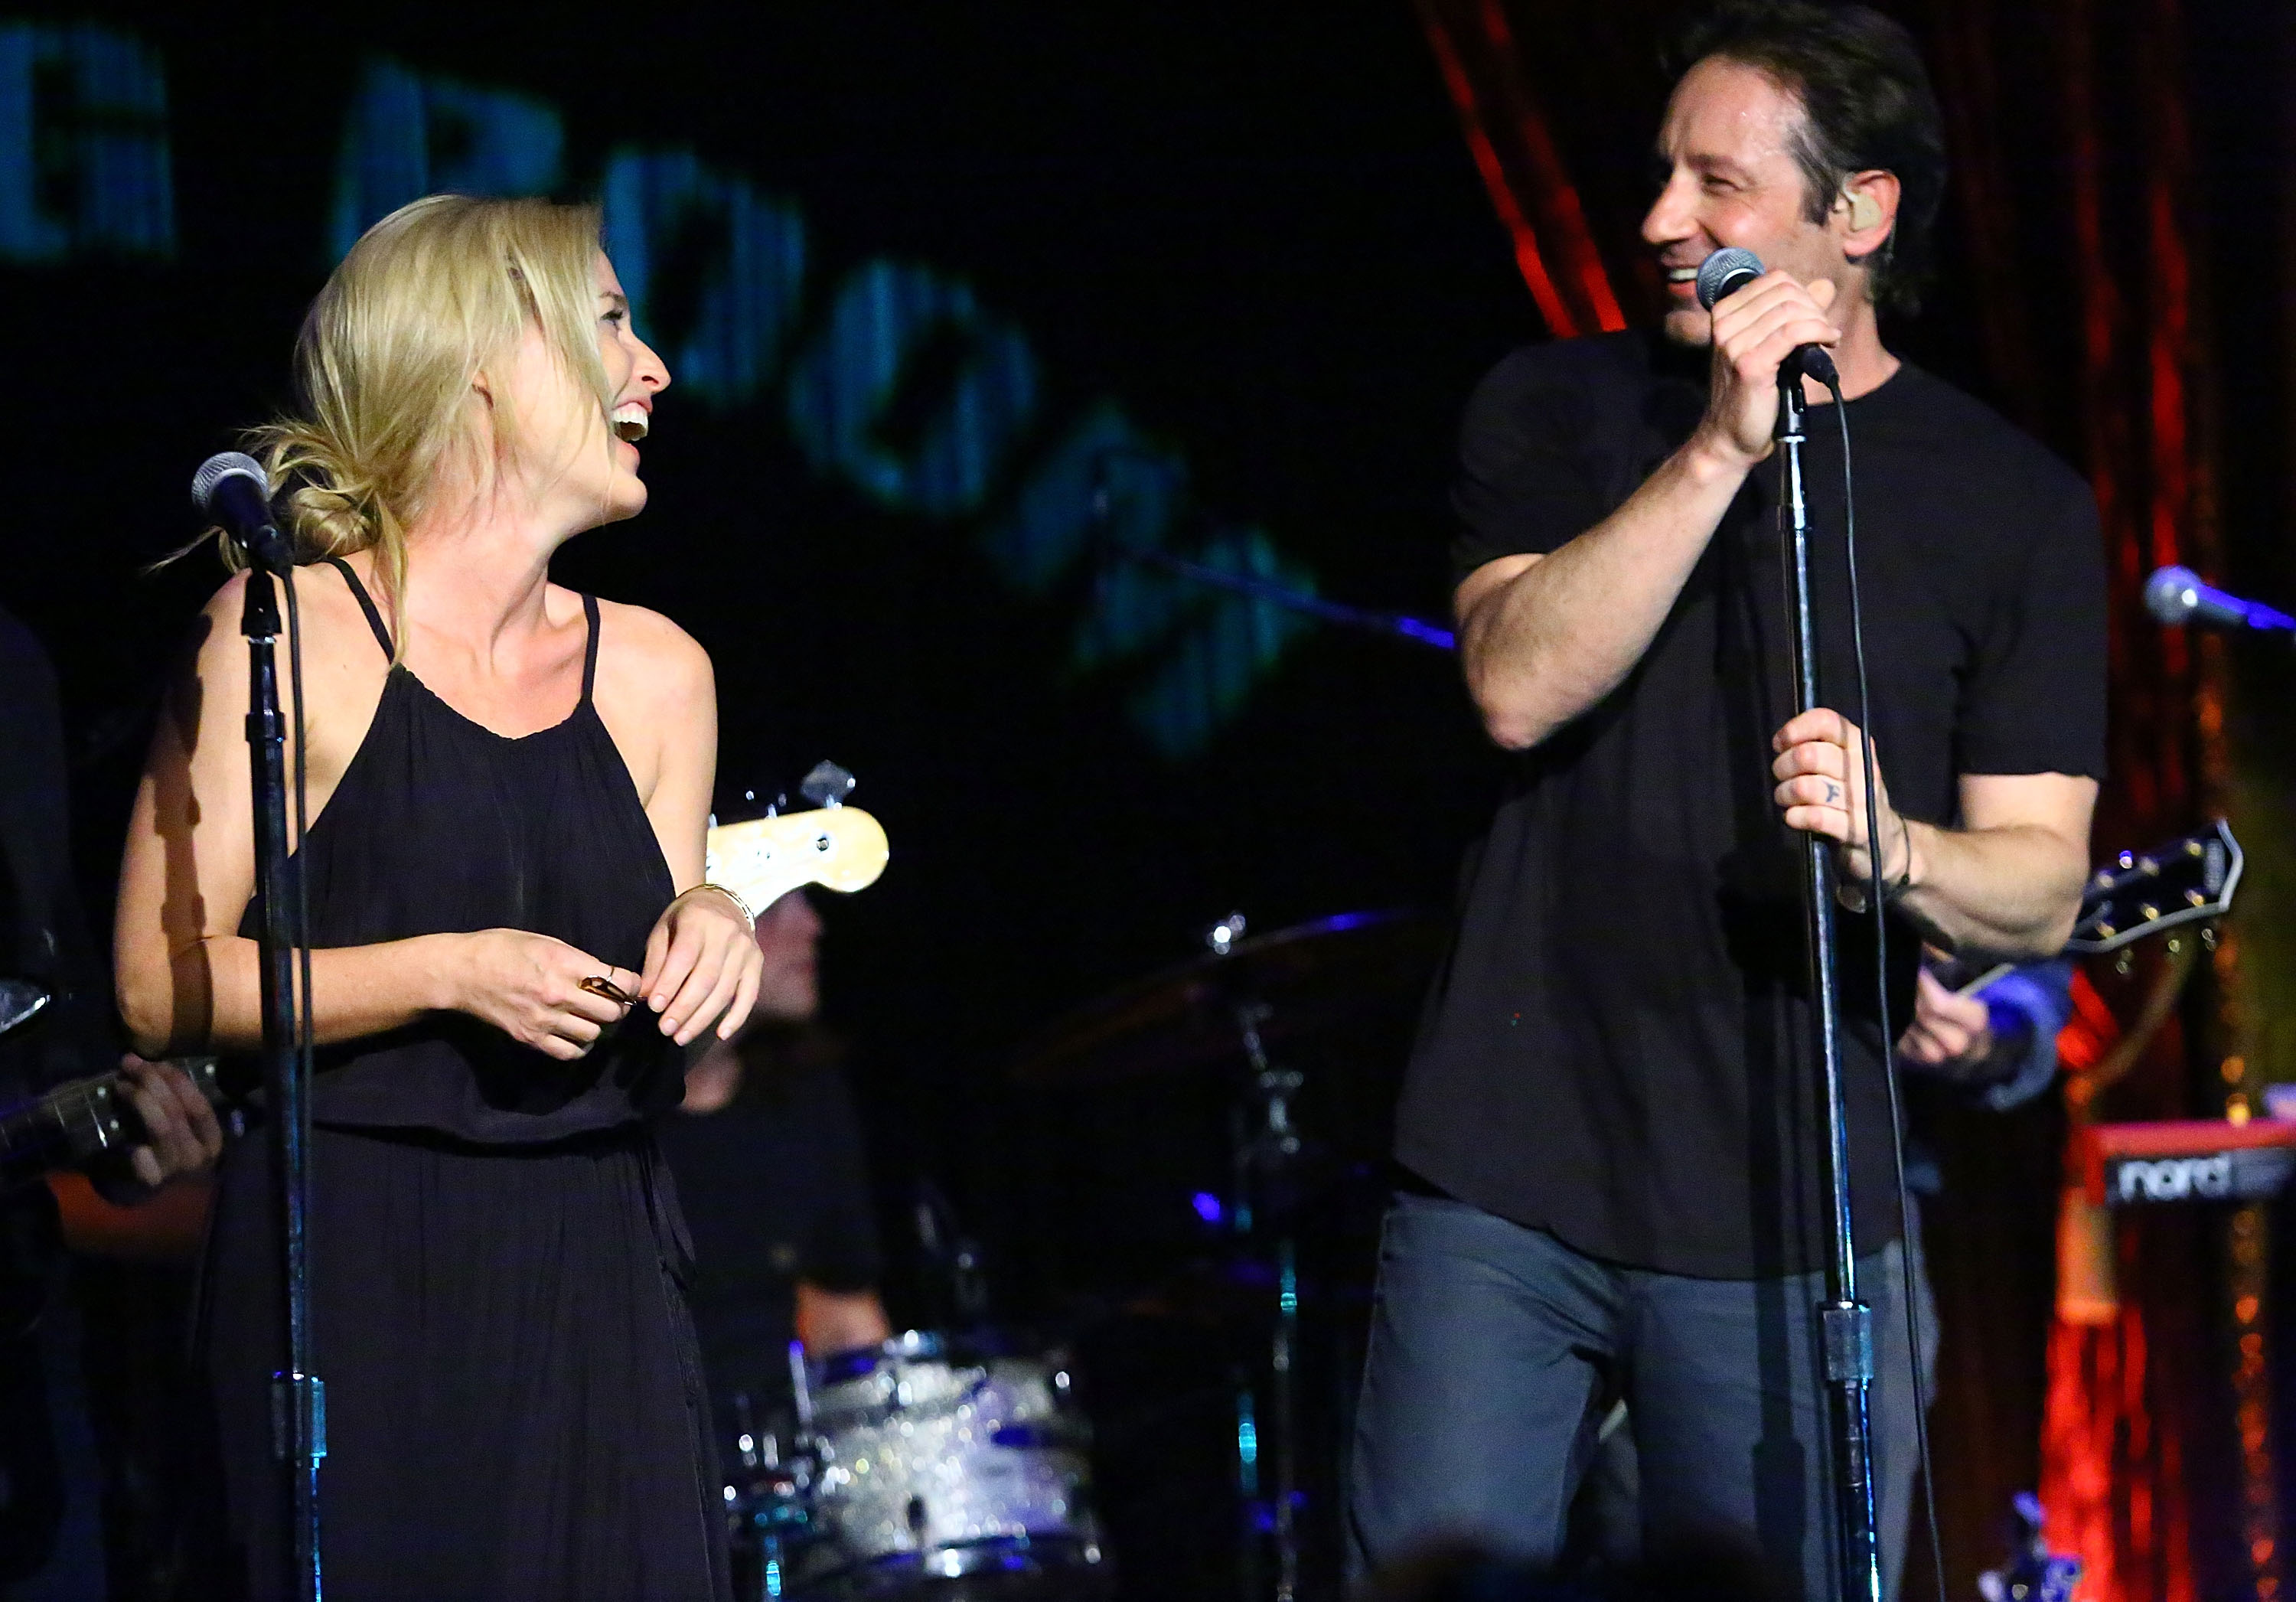 Gillian Anderson and David Duchovny perform at The Cutting Room in New York City on May 12, 2015.